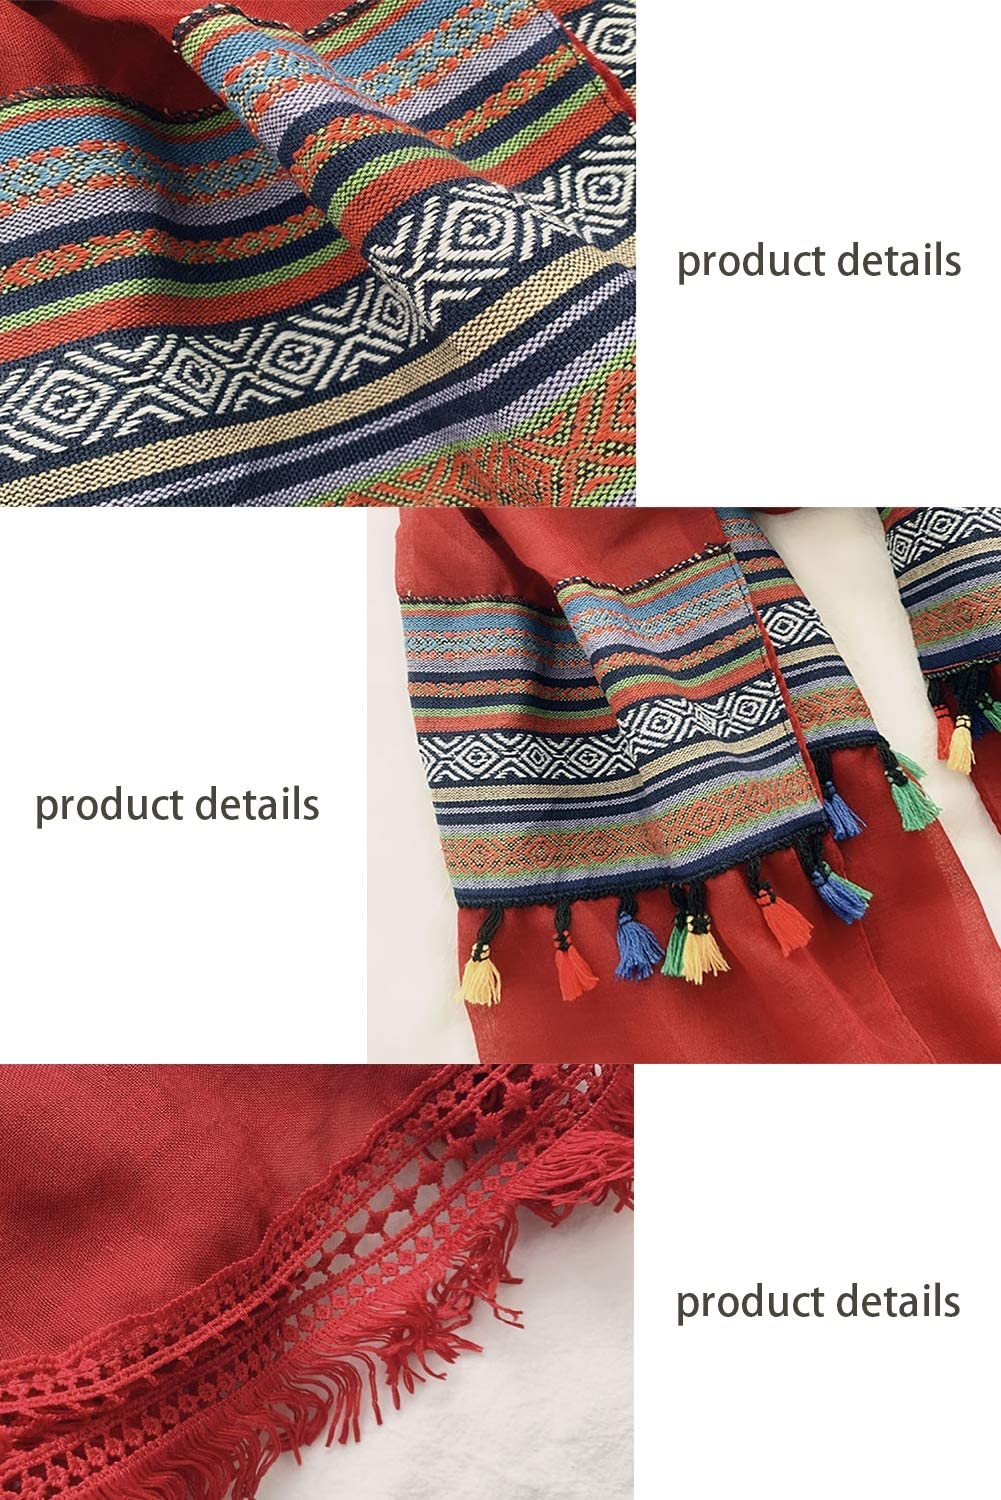 ClothHouse Womens Fashion Scarves Jewelry Bohemian Lightweight Embroidery Vintage Travel Oversized Shawl,Red90*200cm